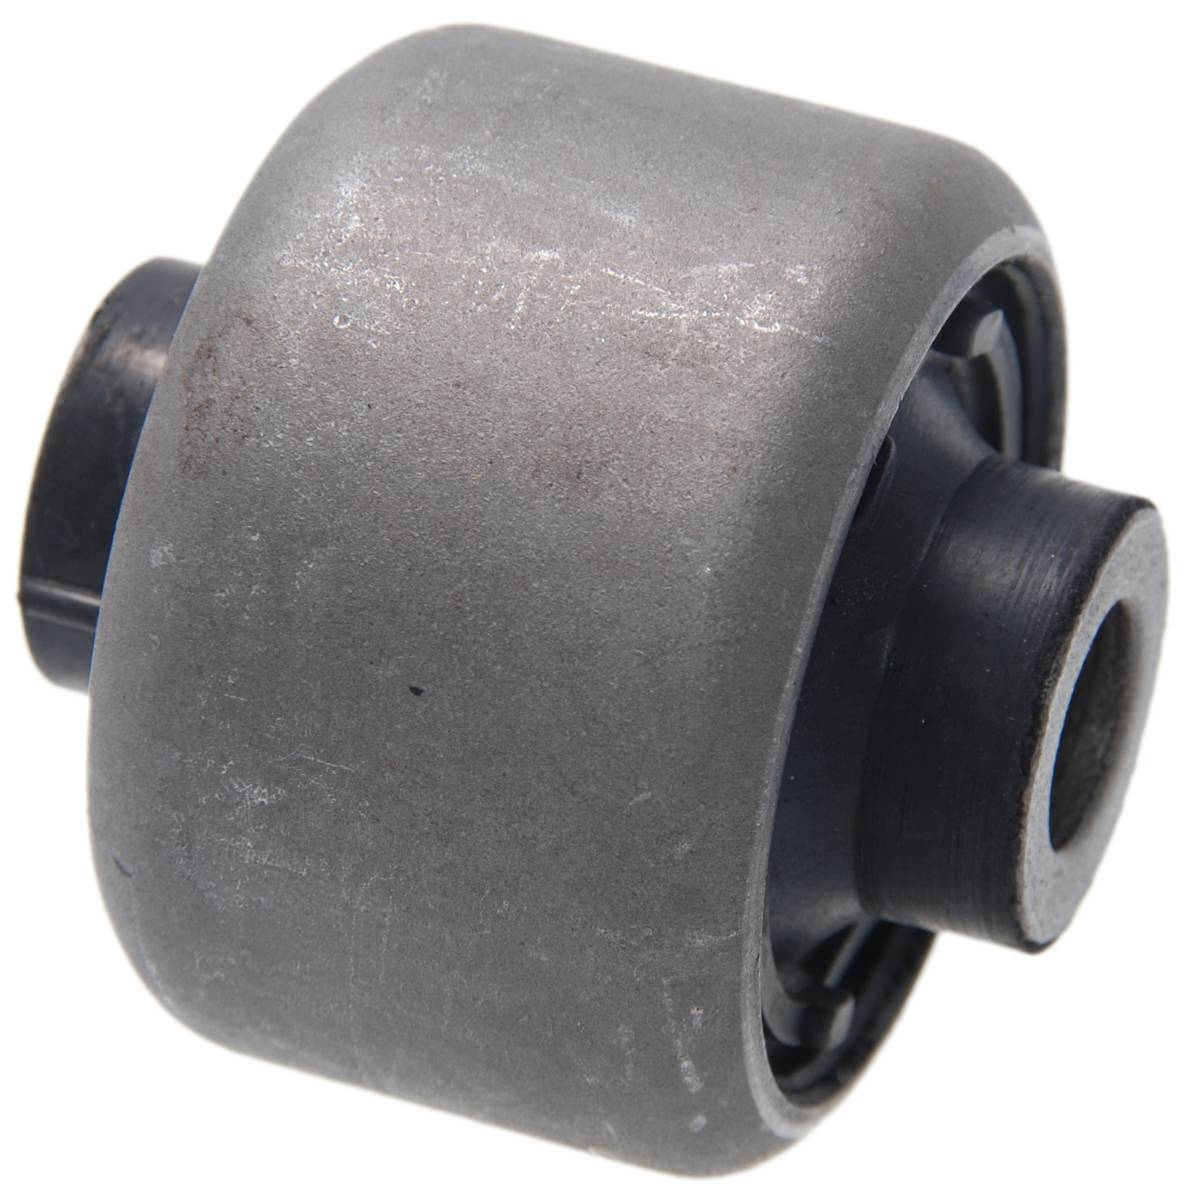 FRONT ARM BUSHING FRONT ARM - For Volvo S80 II 2007- OEM: 31212782